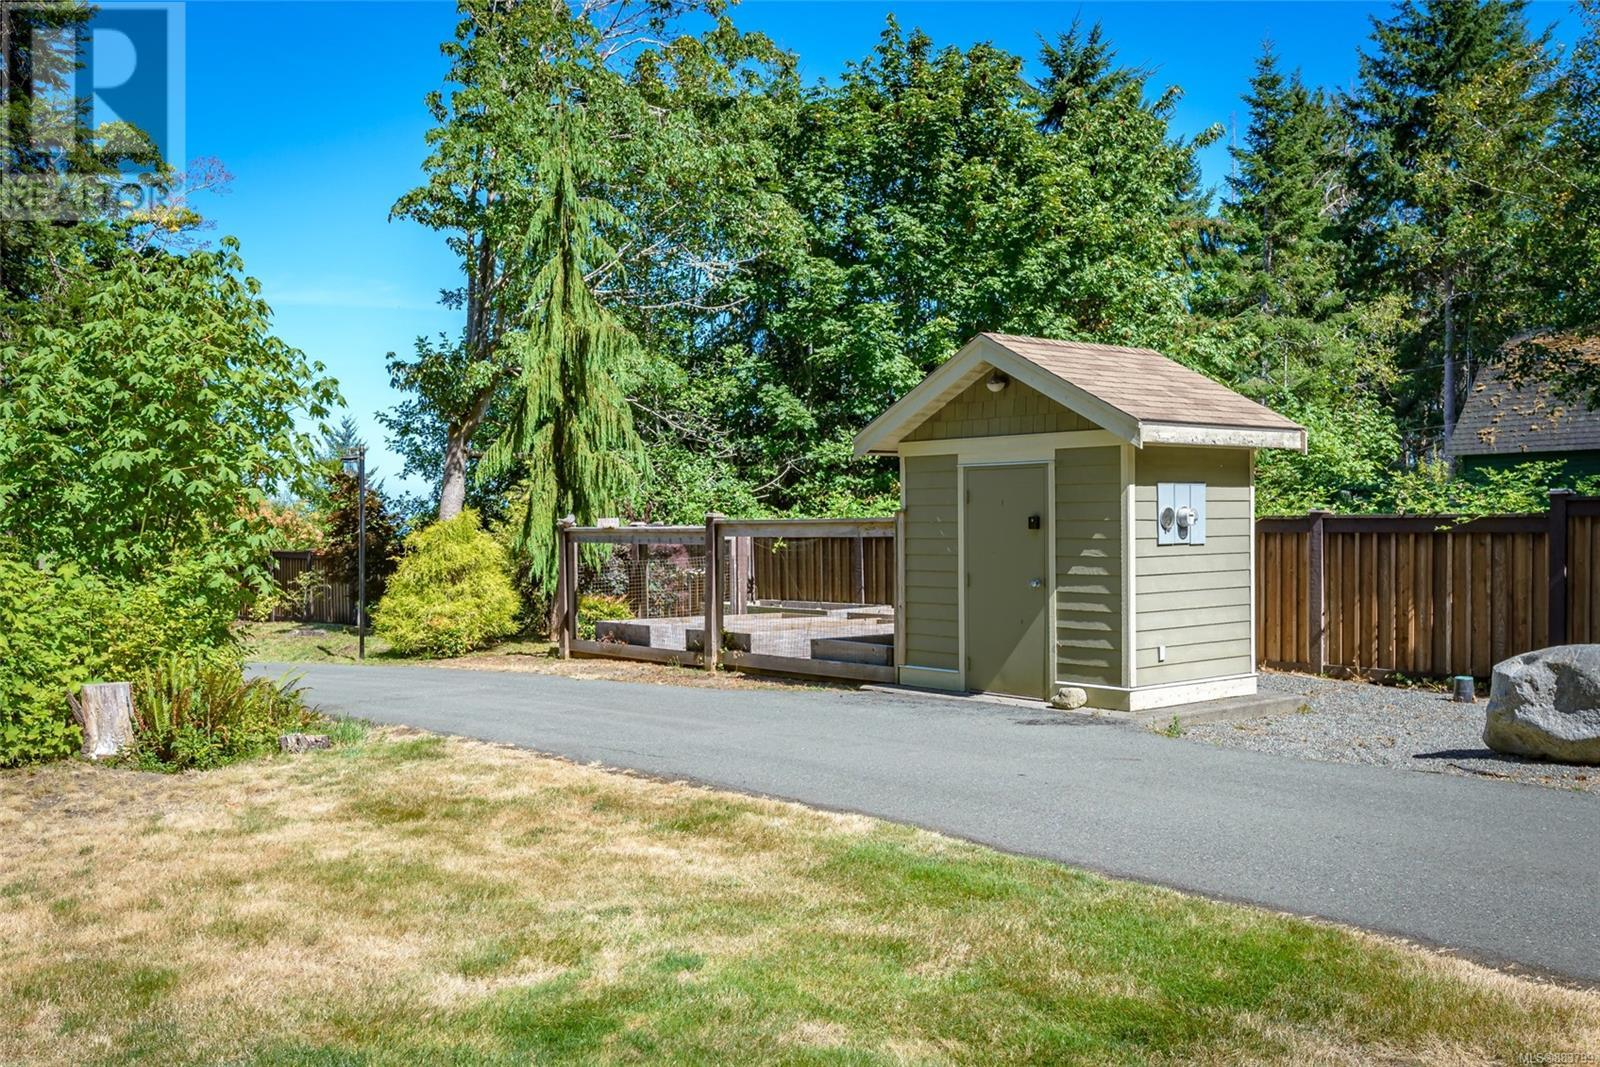 MLS® #883799 - Courtenay House For sale Image #82